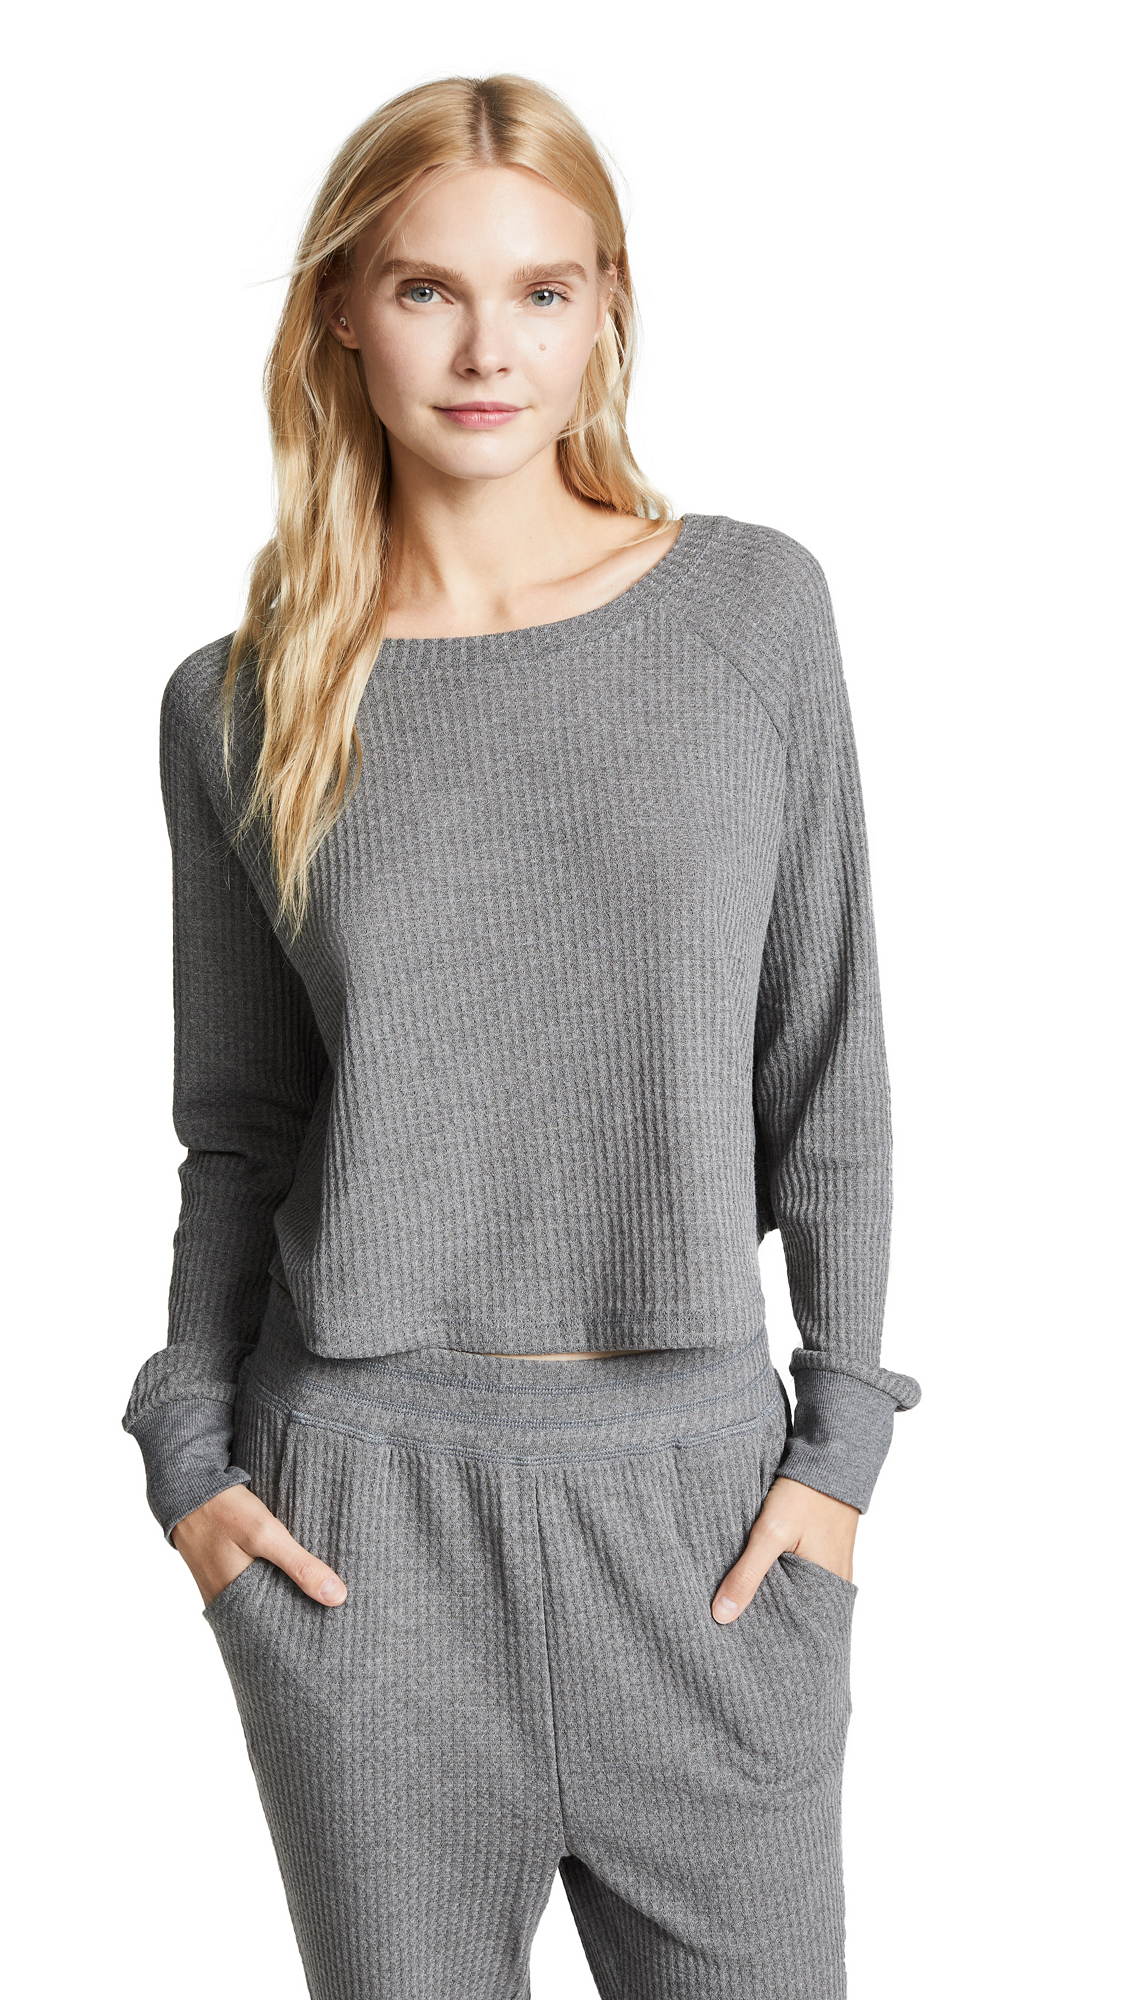 Honeydew Intimates Sneak Peek Waffle Knit Crop Sweatshirt In Heather Grey